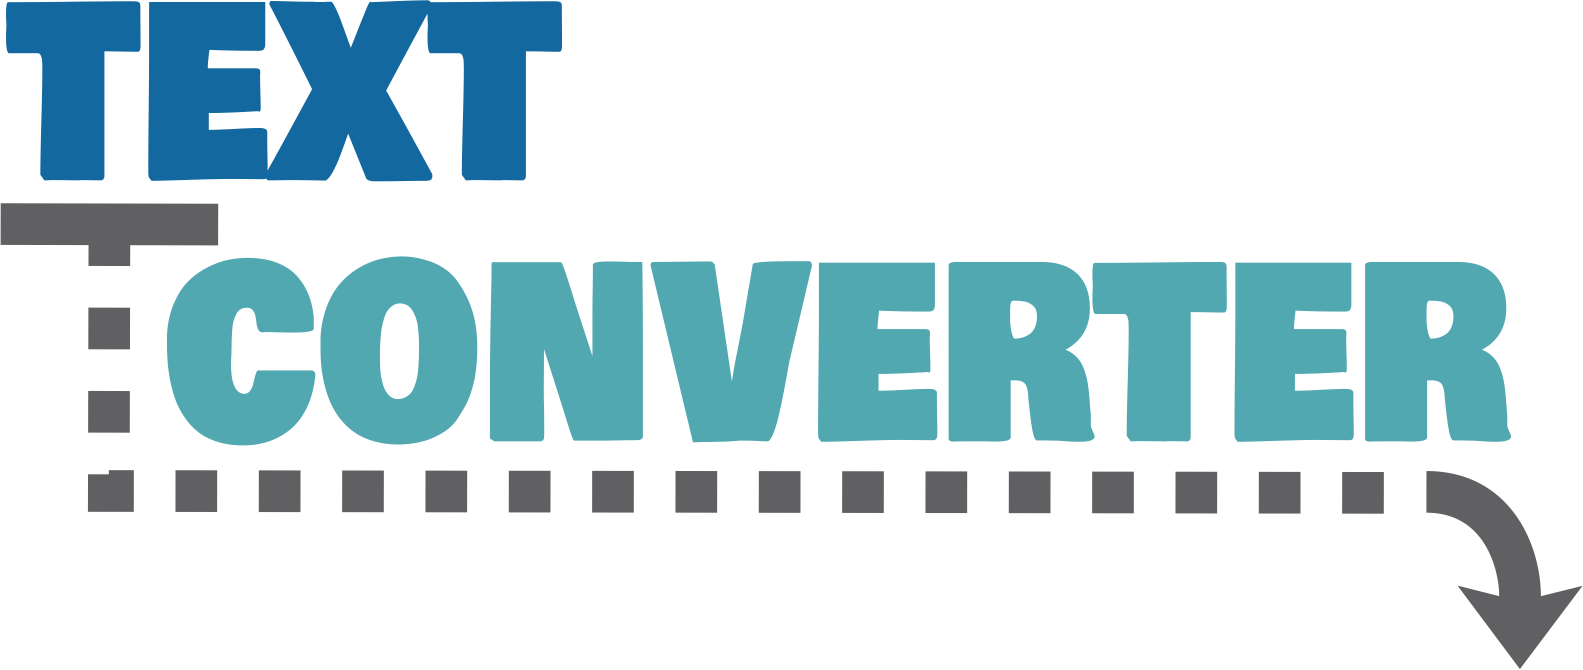 Text to png converter. Convert upper case or